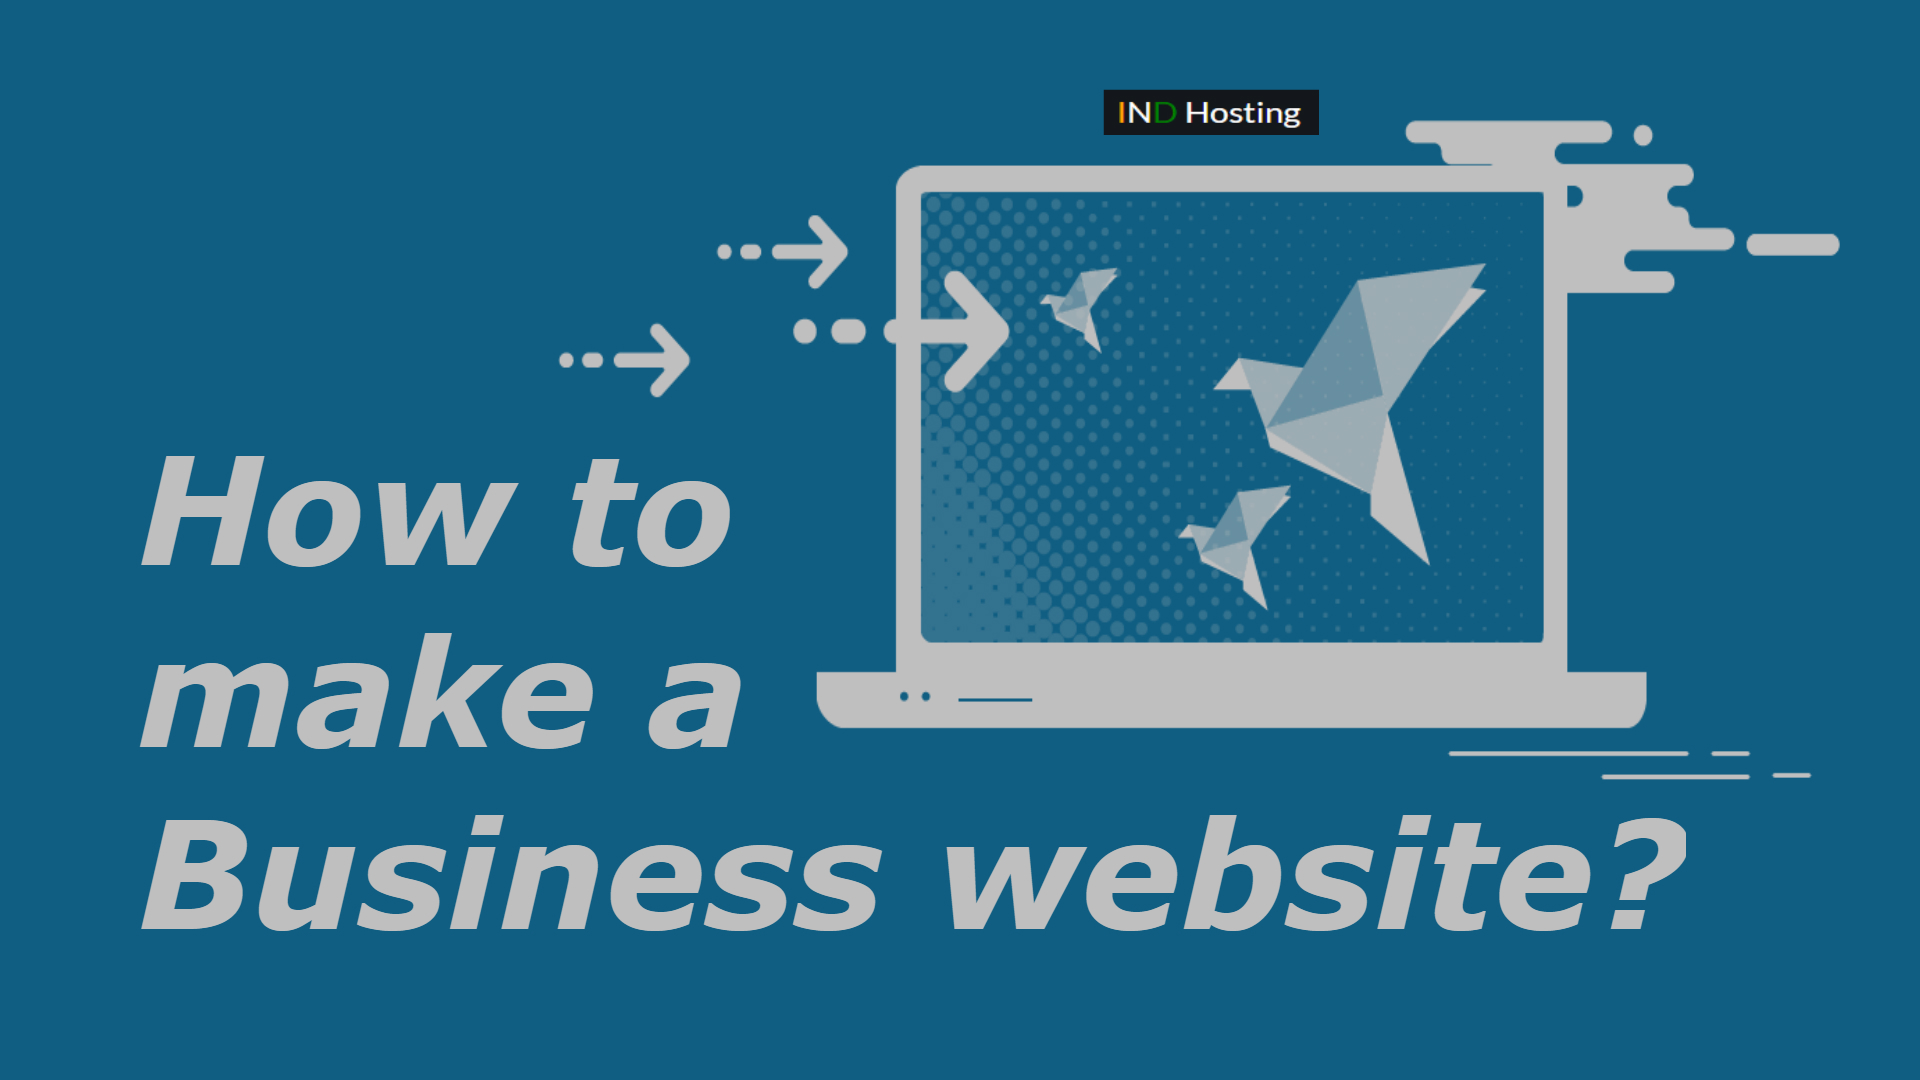 How to make a Business website?